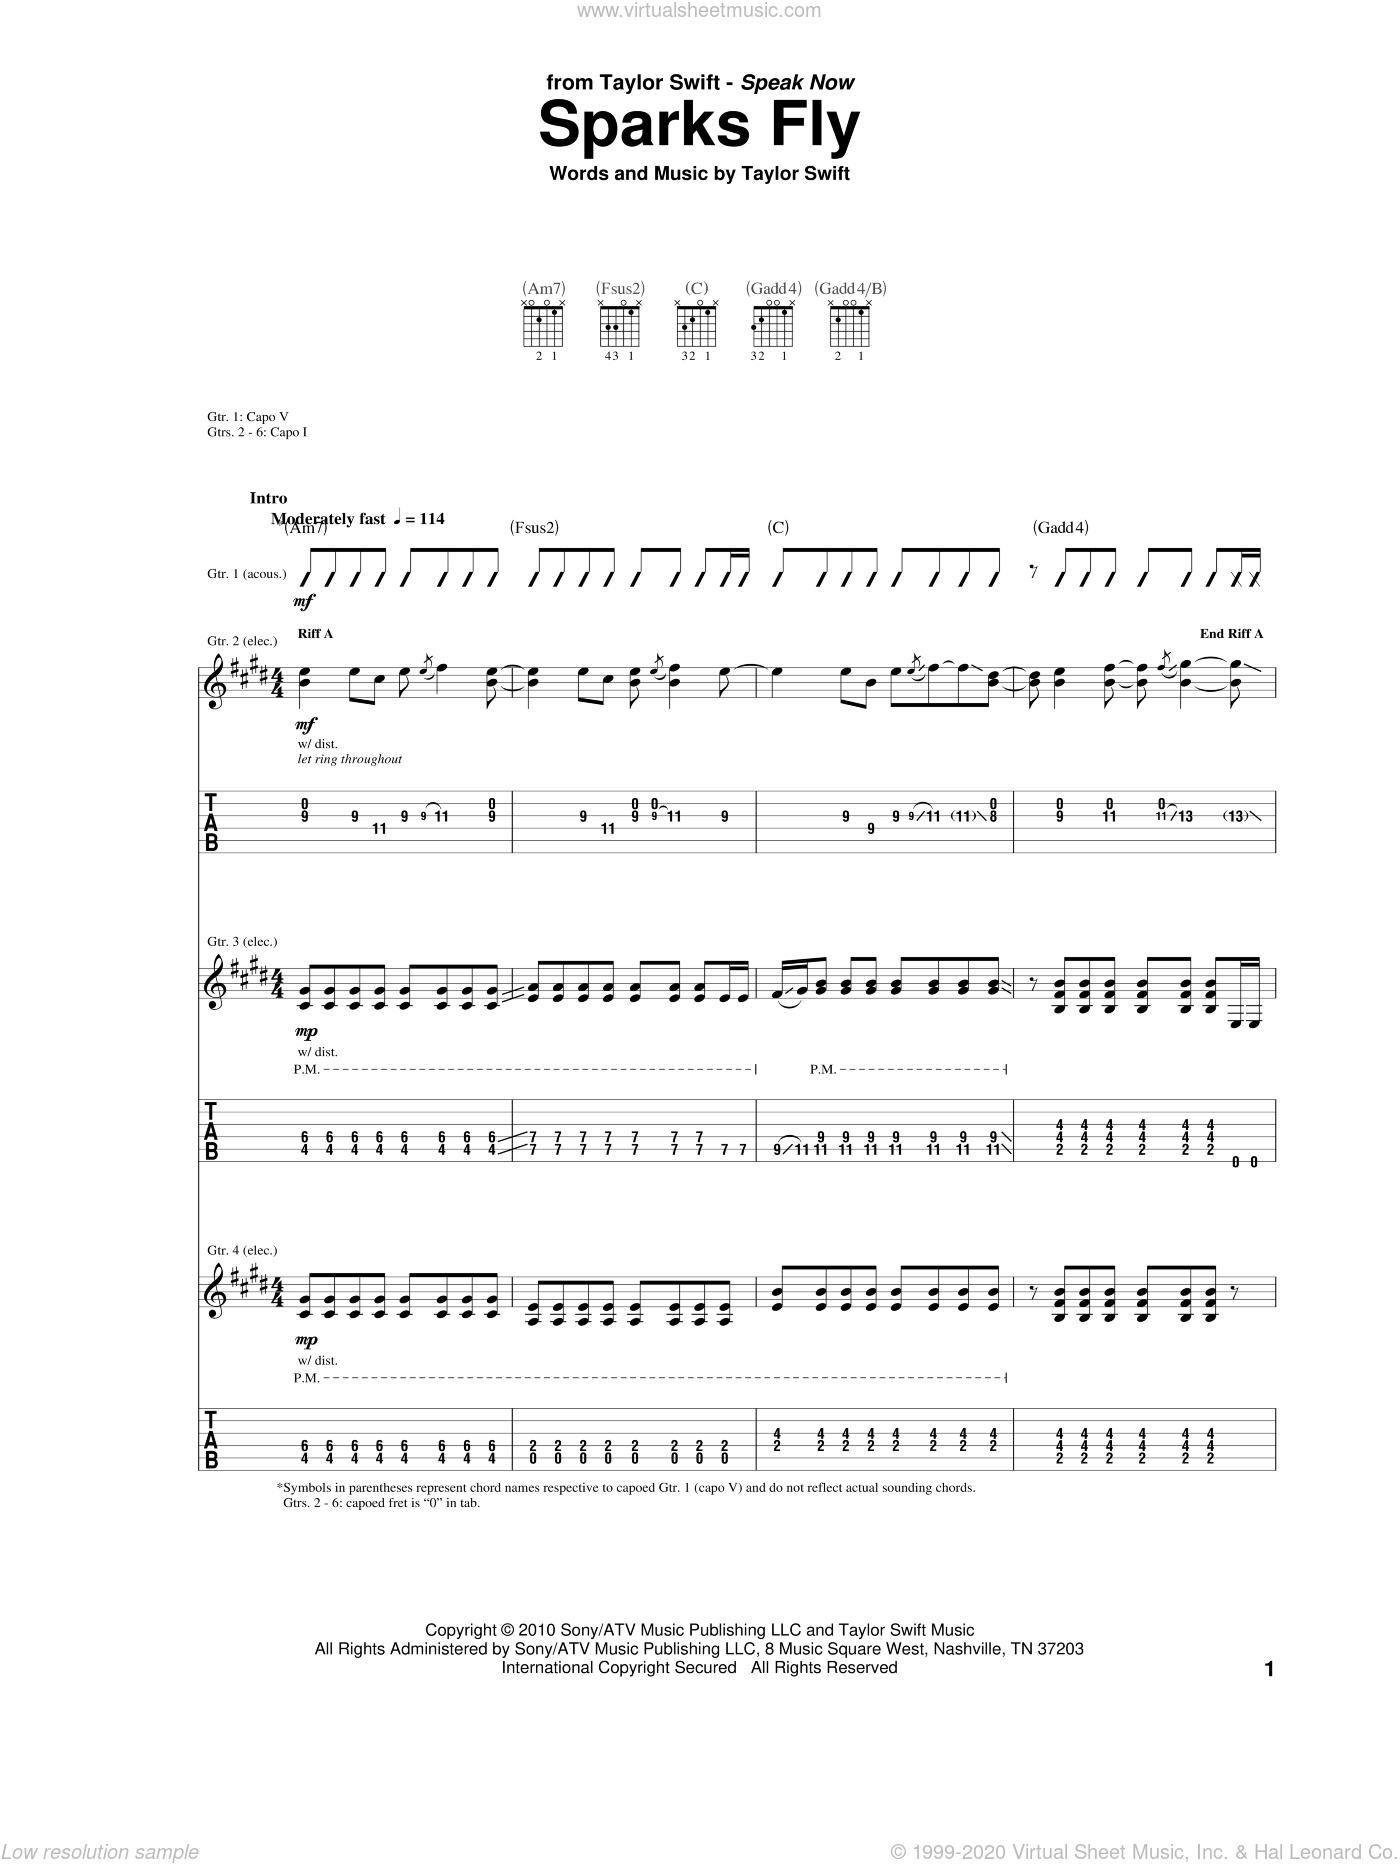 Sparks Fly sheet music for guitar (tablature) by Taylor Swift